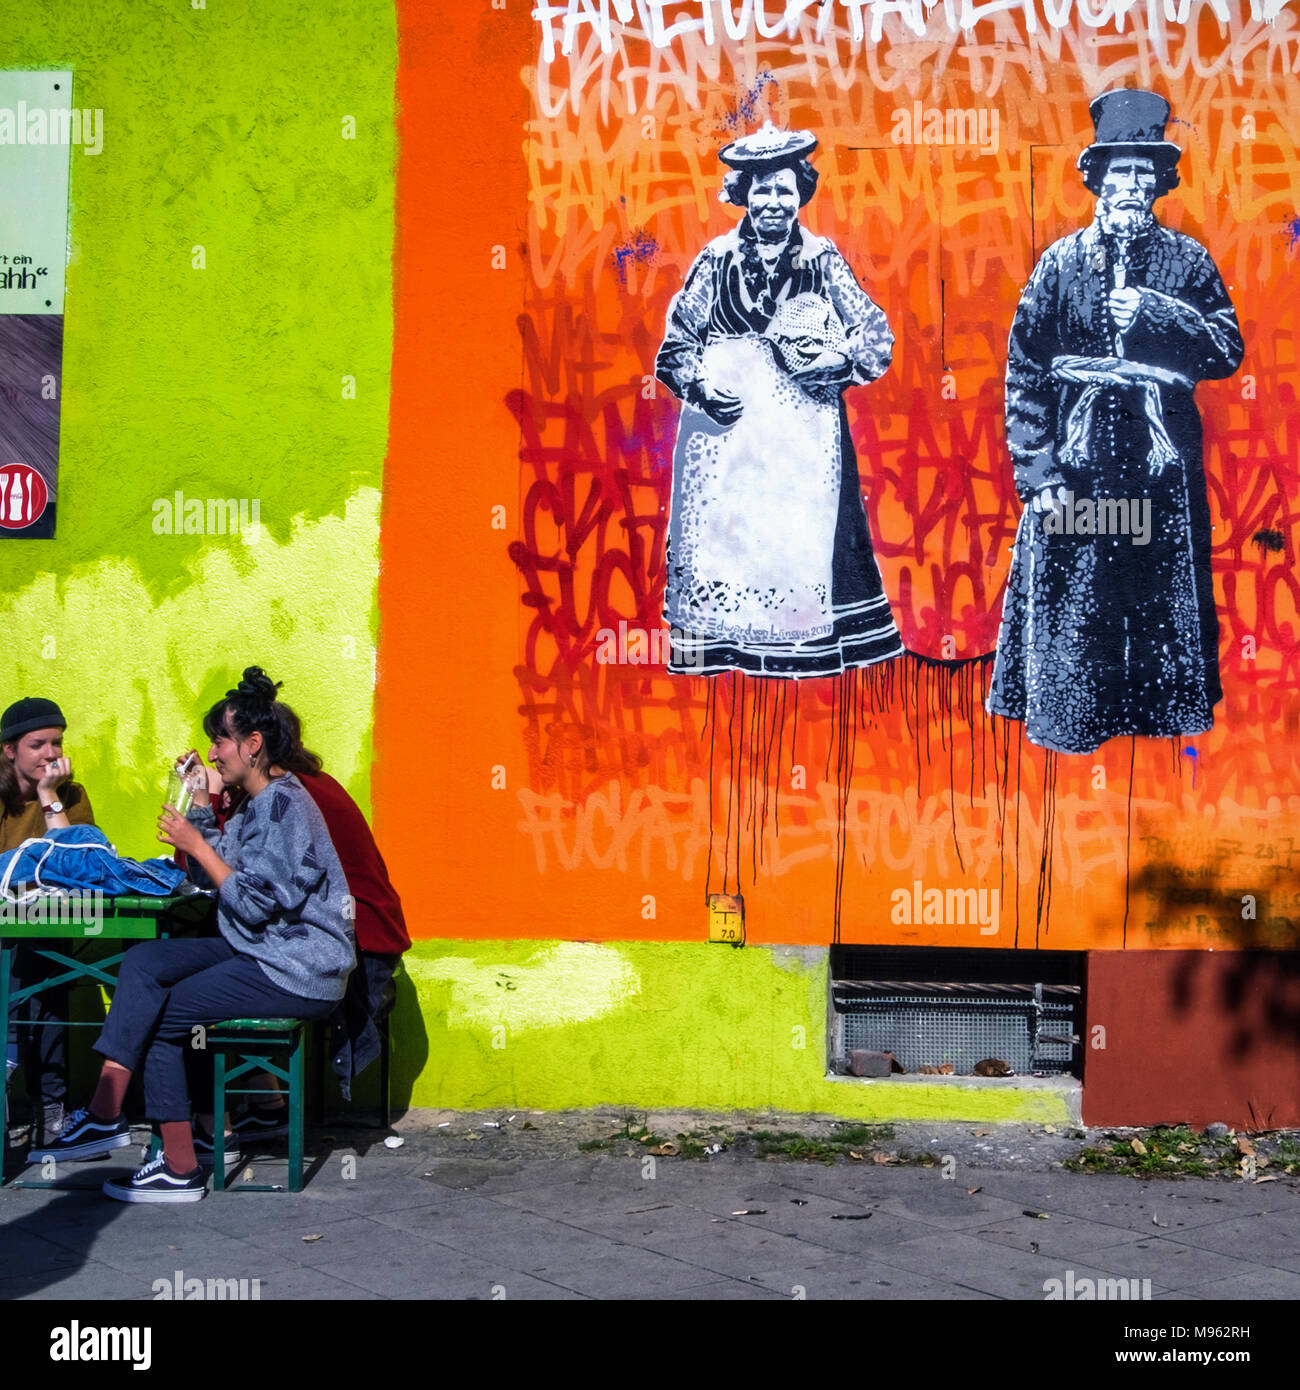 Berlin Mitte, Two young women sit in the sun next to colourful street art work By Estonian street artist, Edward von Lõngus - Stock Image